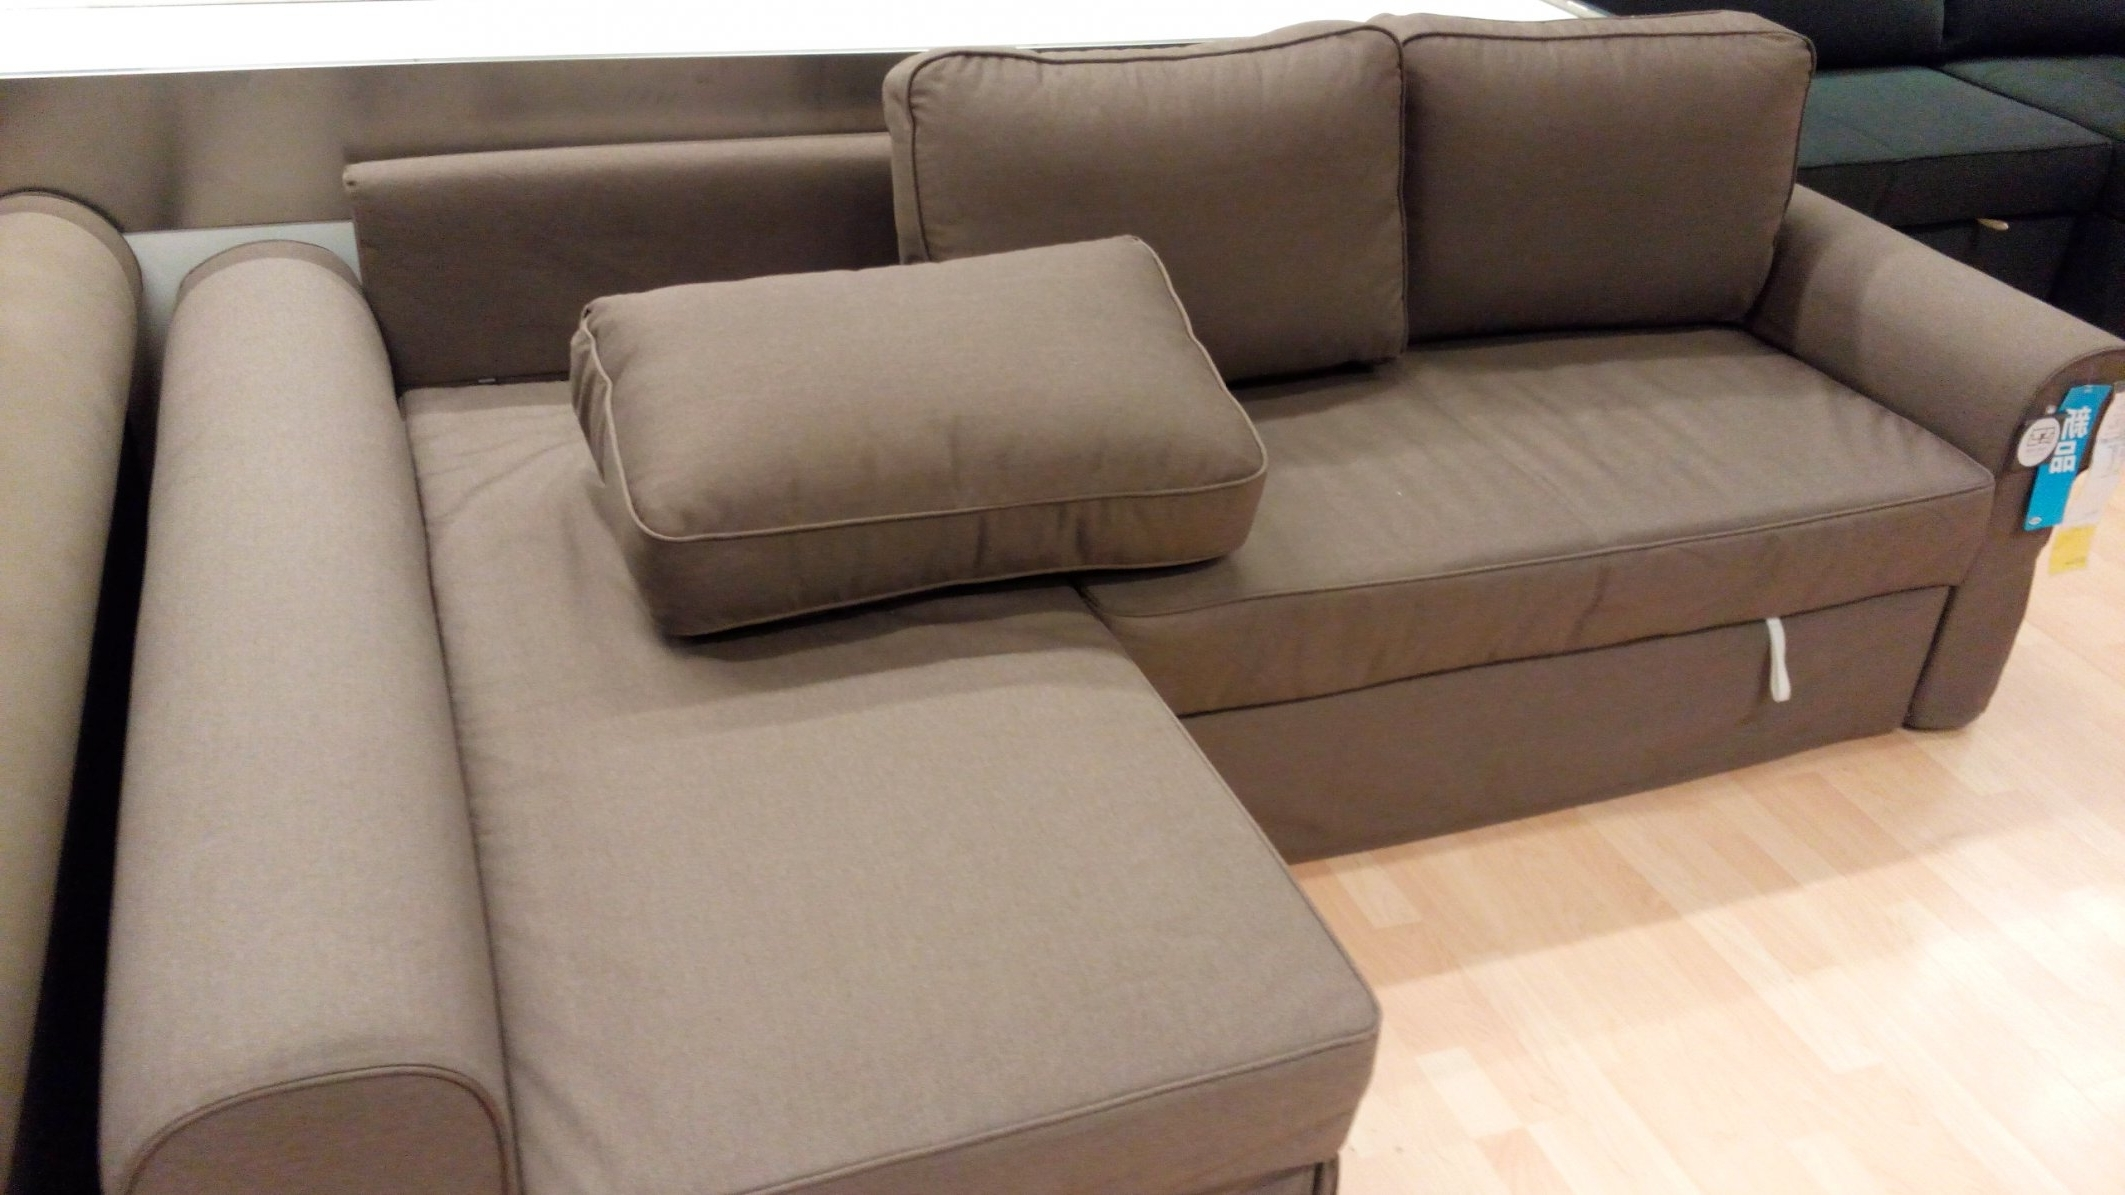 Manstad Sofas With Regard To Latest Manstad Sofa Bed Dimensions #2 Ikea Backabro Sofa Bed With Chaise (View 10 of 15)